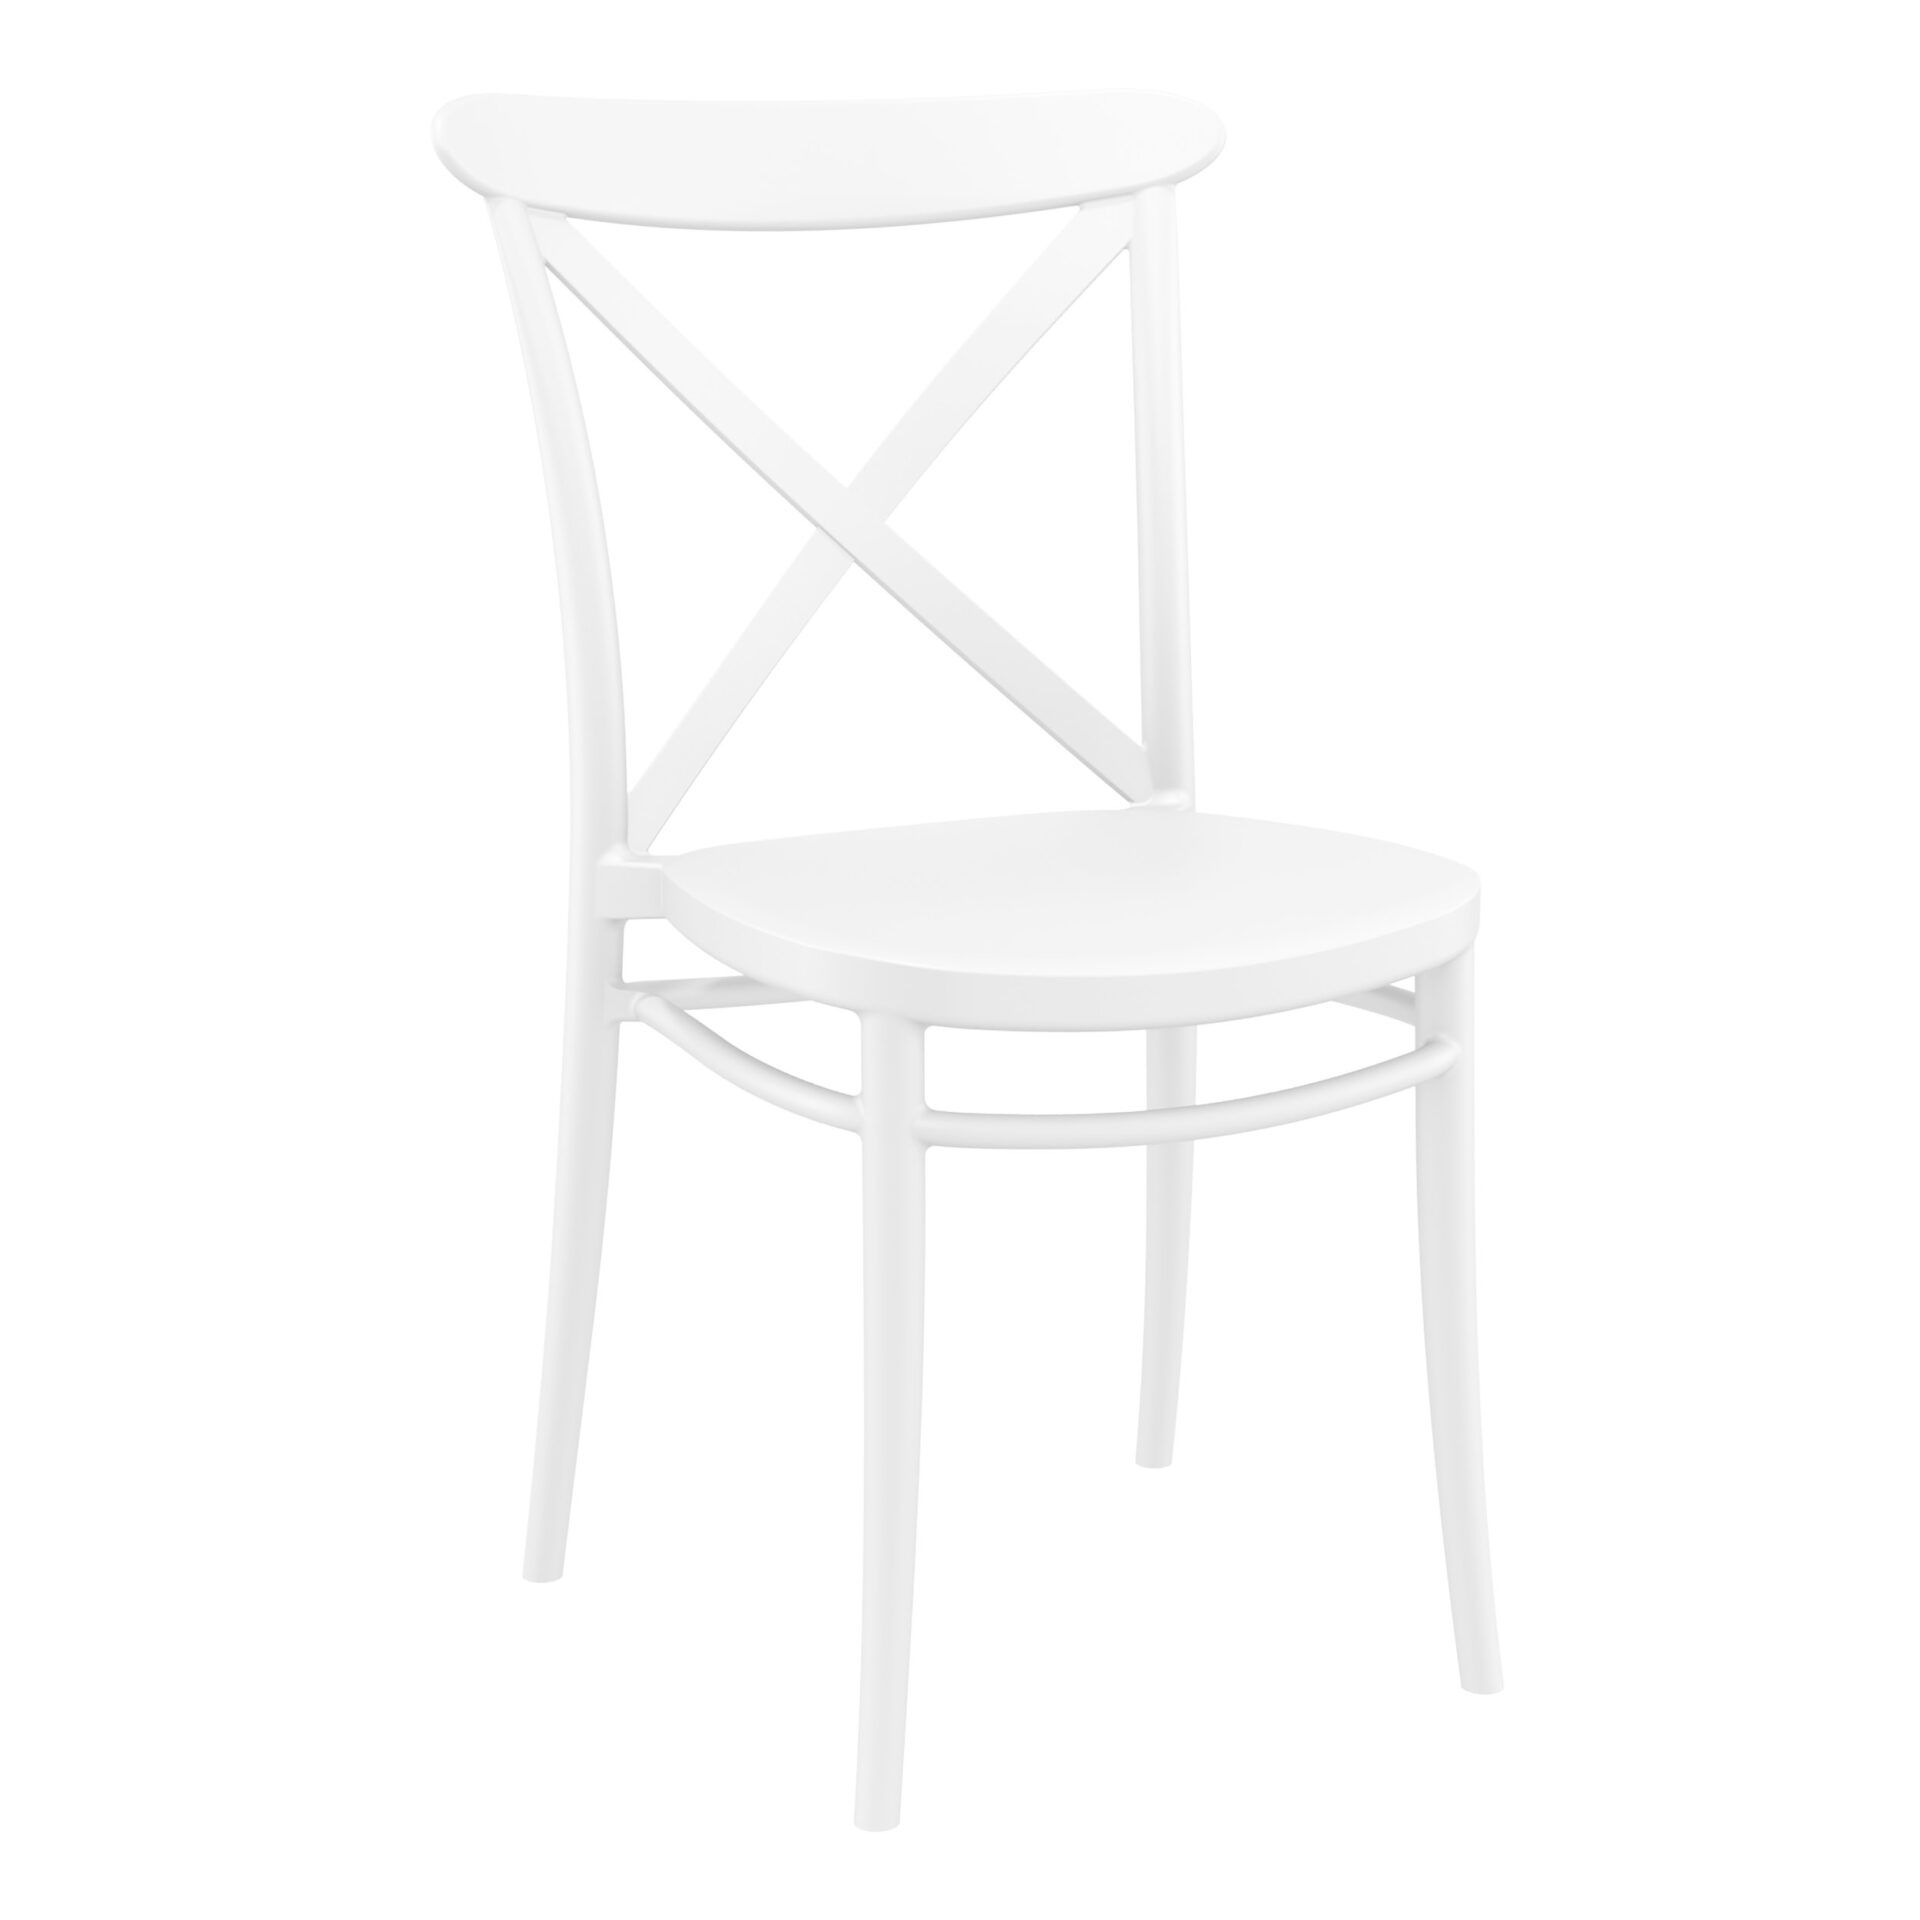 cafe polypropylene cross chair white front side 1